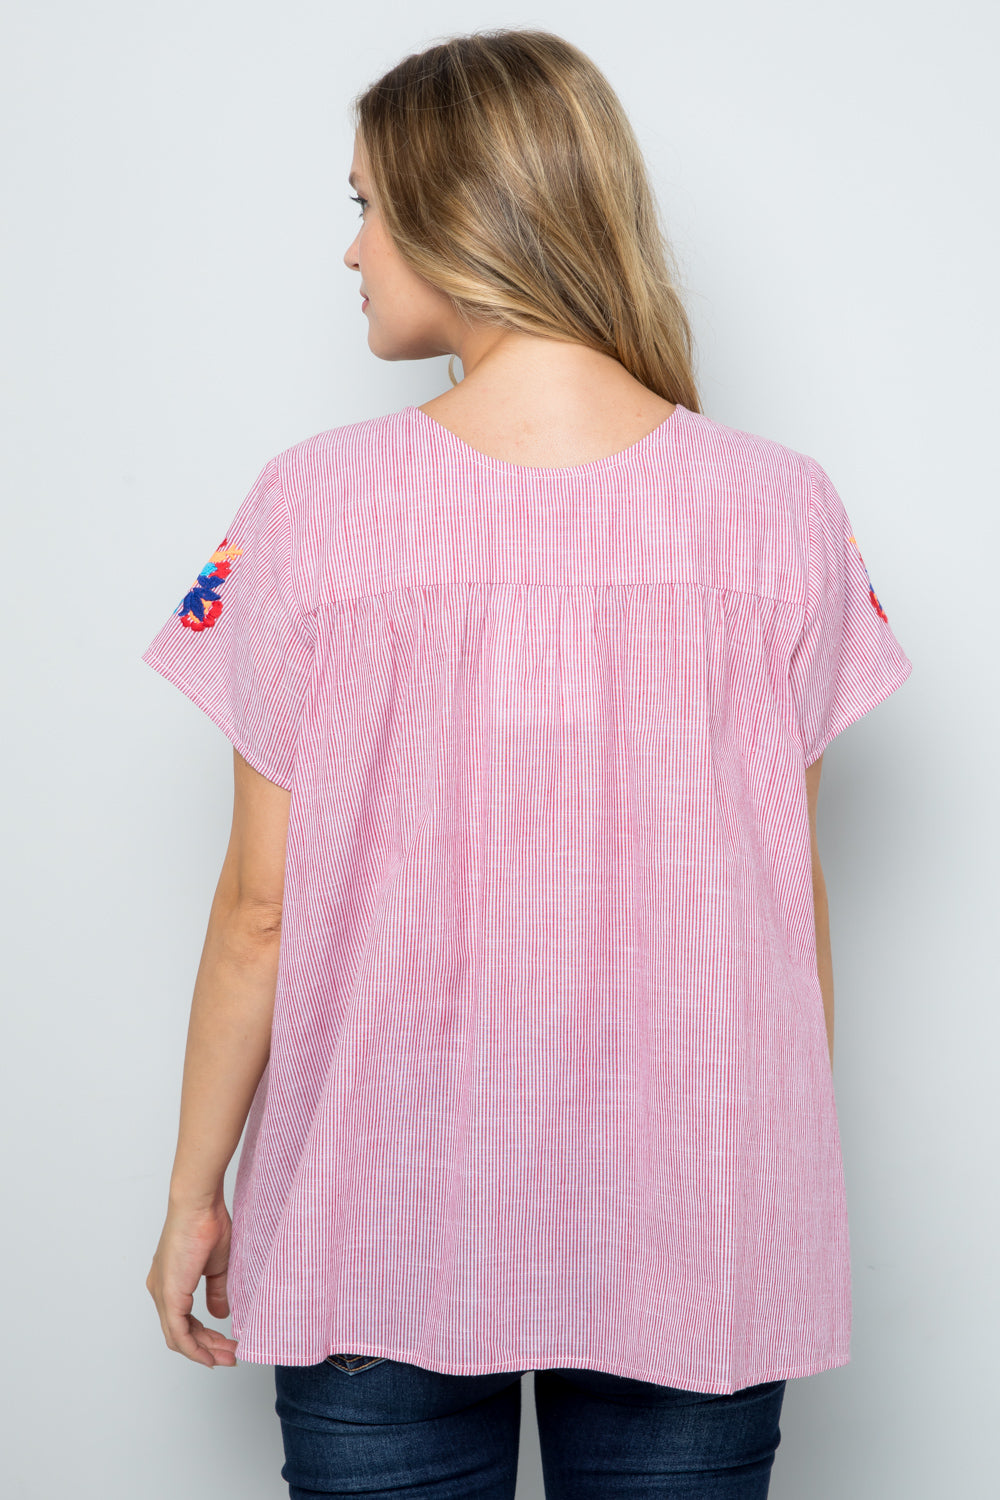 T2377 COLOR EMBROIDERY DETAIL STRIPE TOP - RED